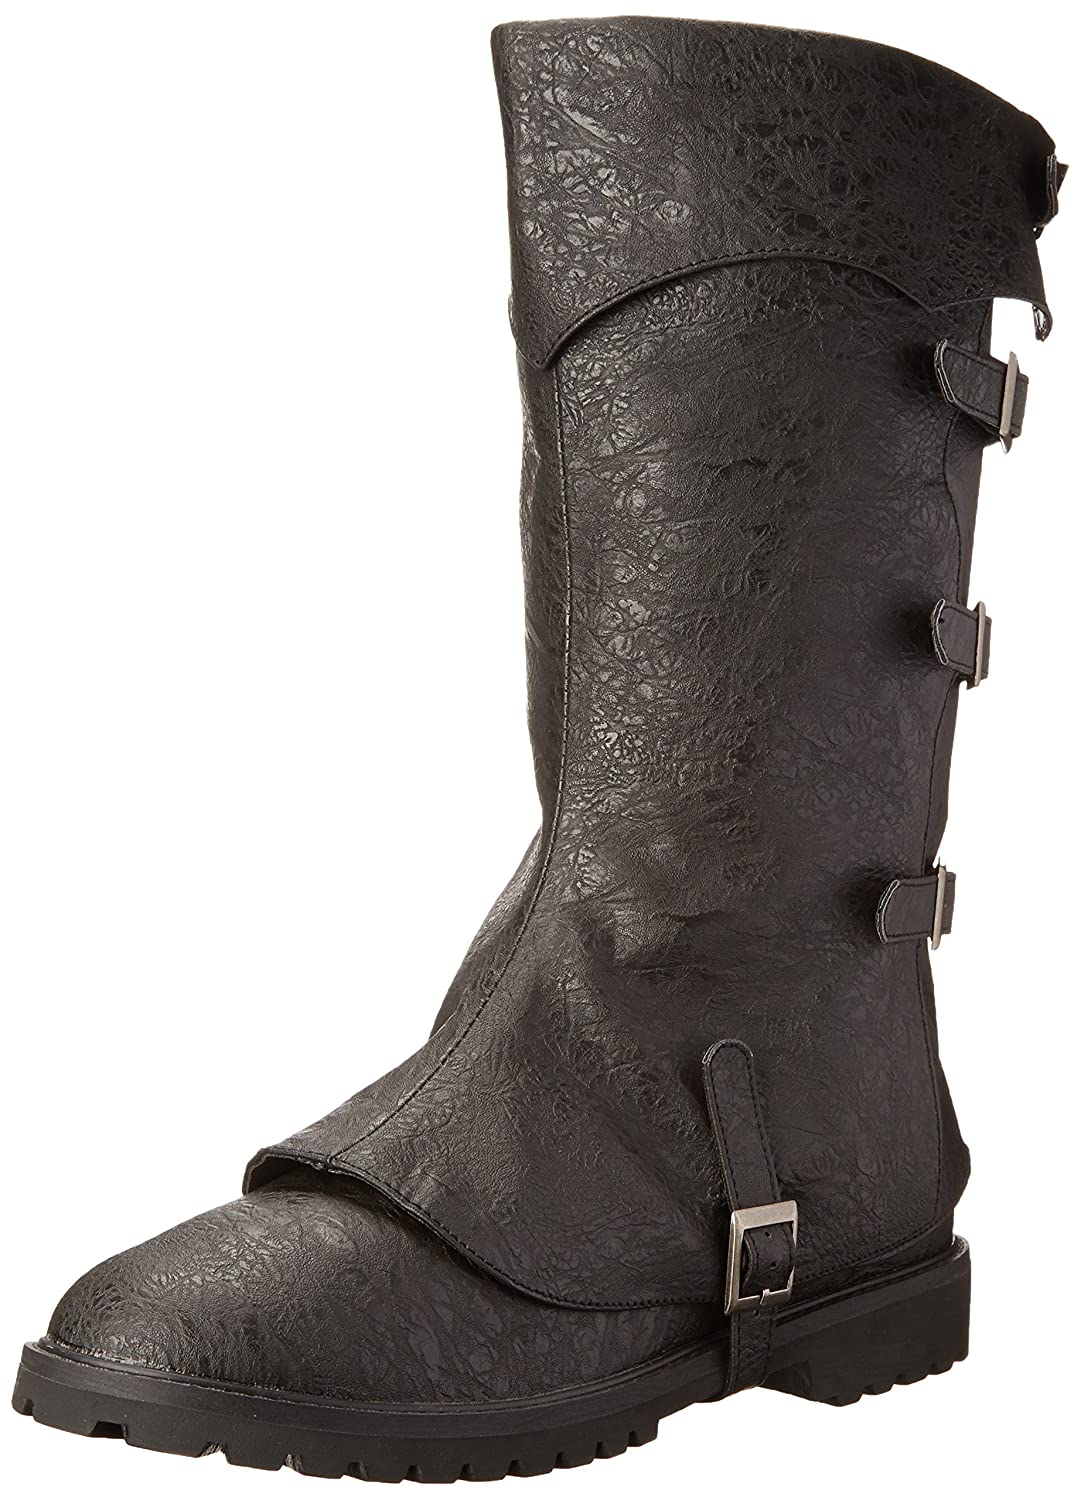 Steampunk Boots and Shoes for Men Funtasma Mens Gotham Engineer Boot $105.95 AT vintagedancer.com